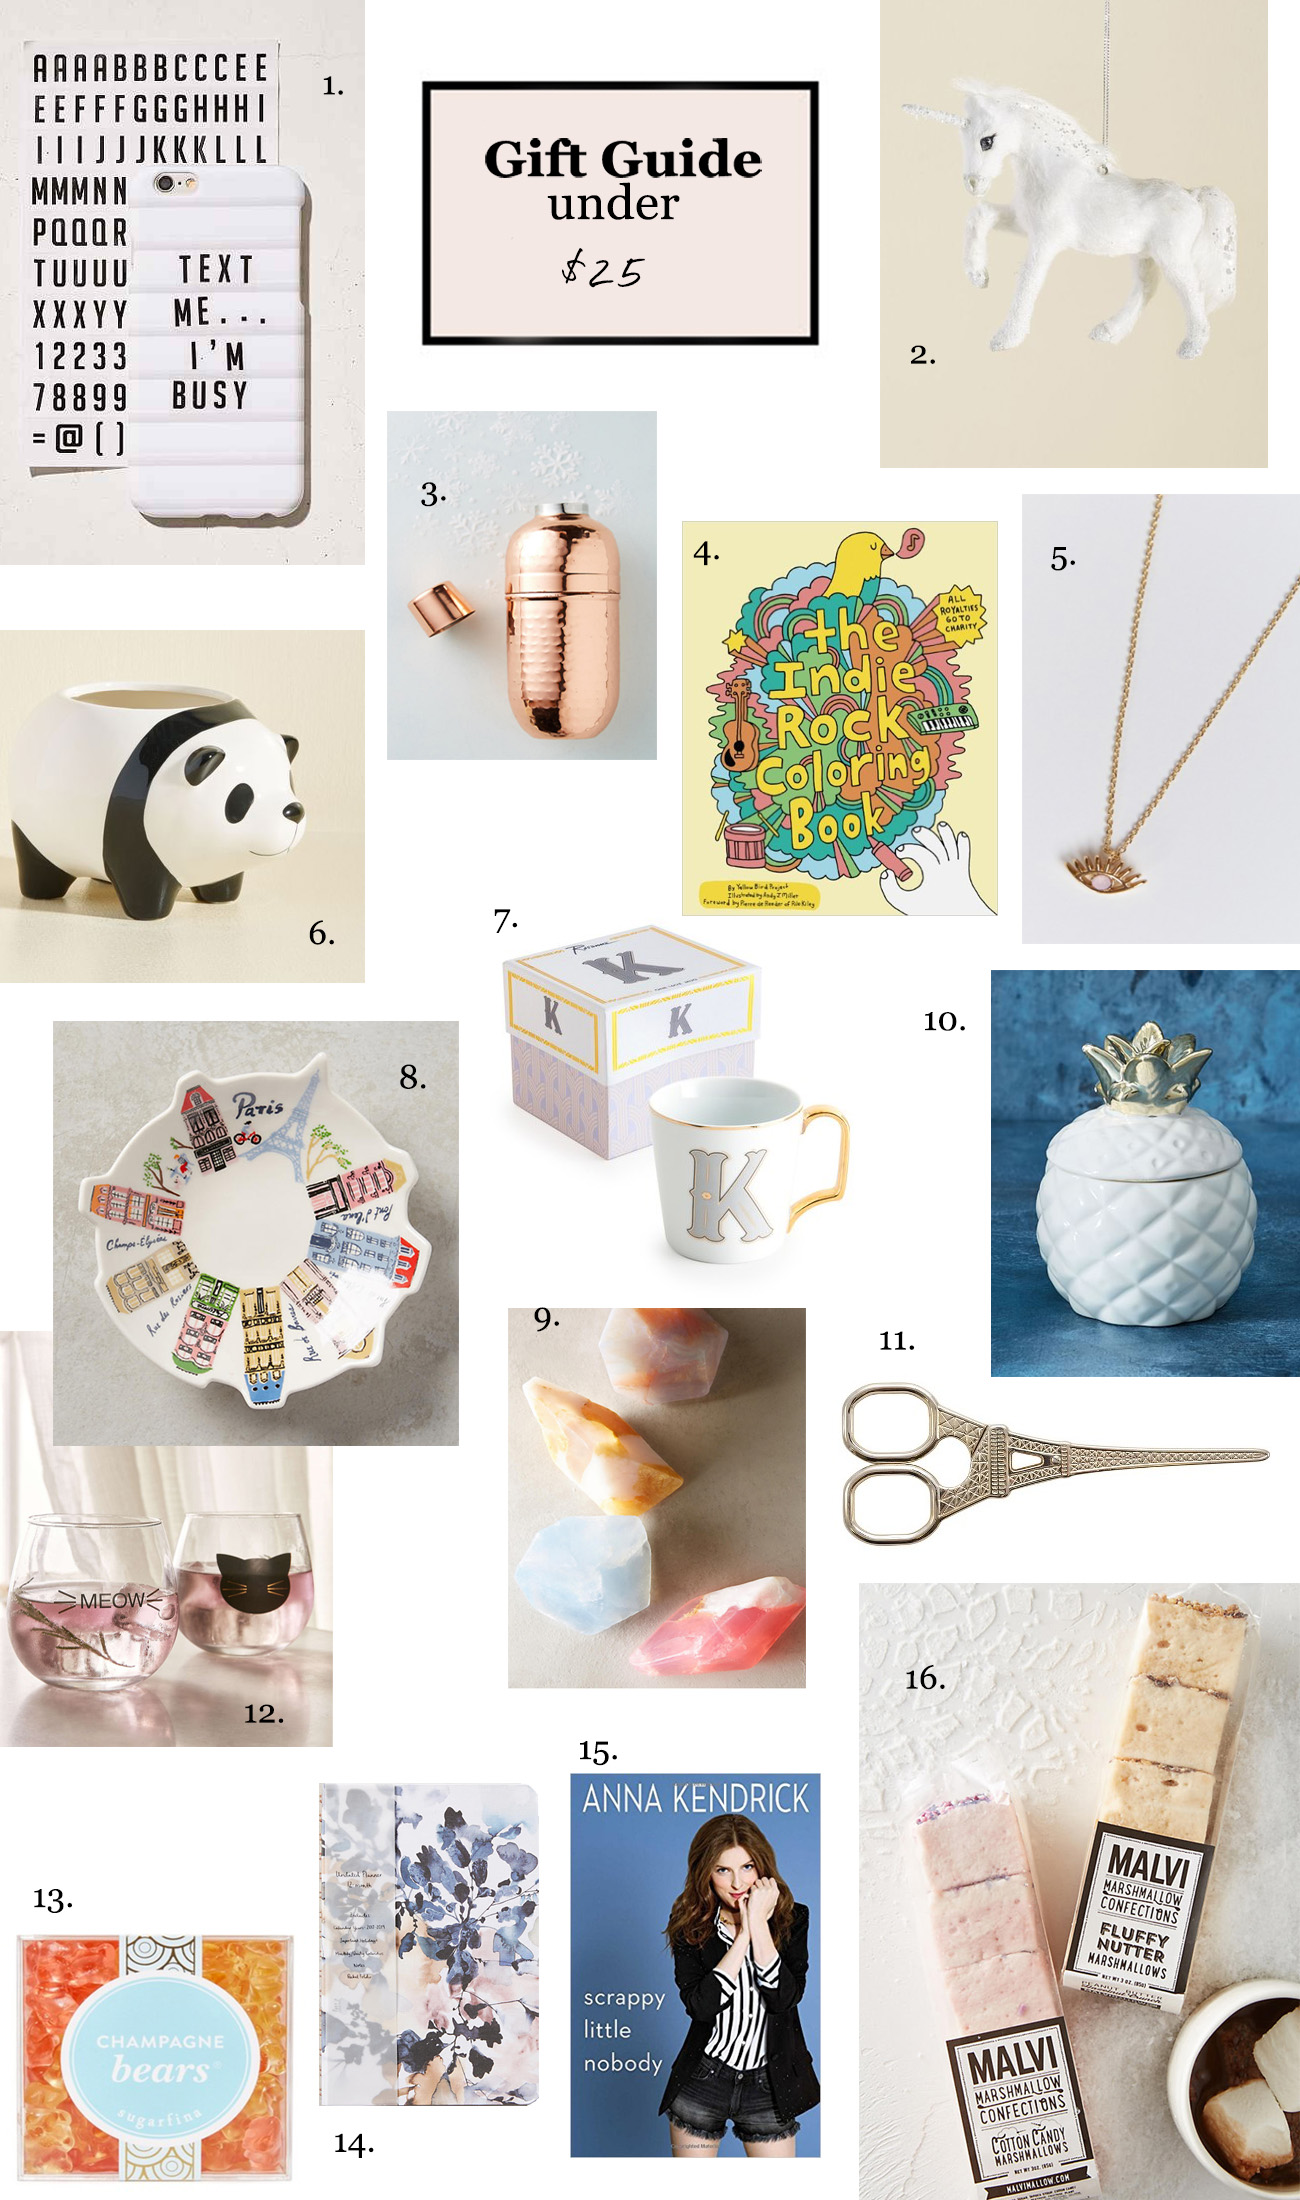 gift guide for under $25